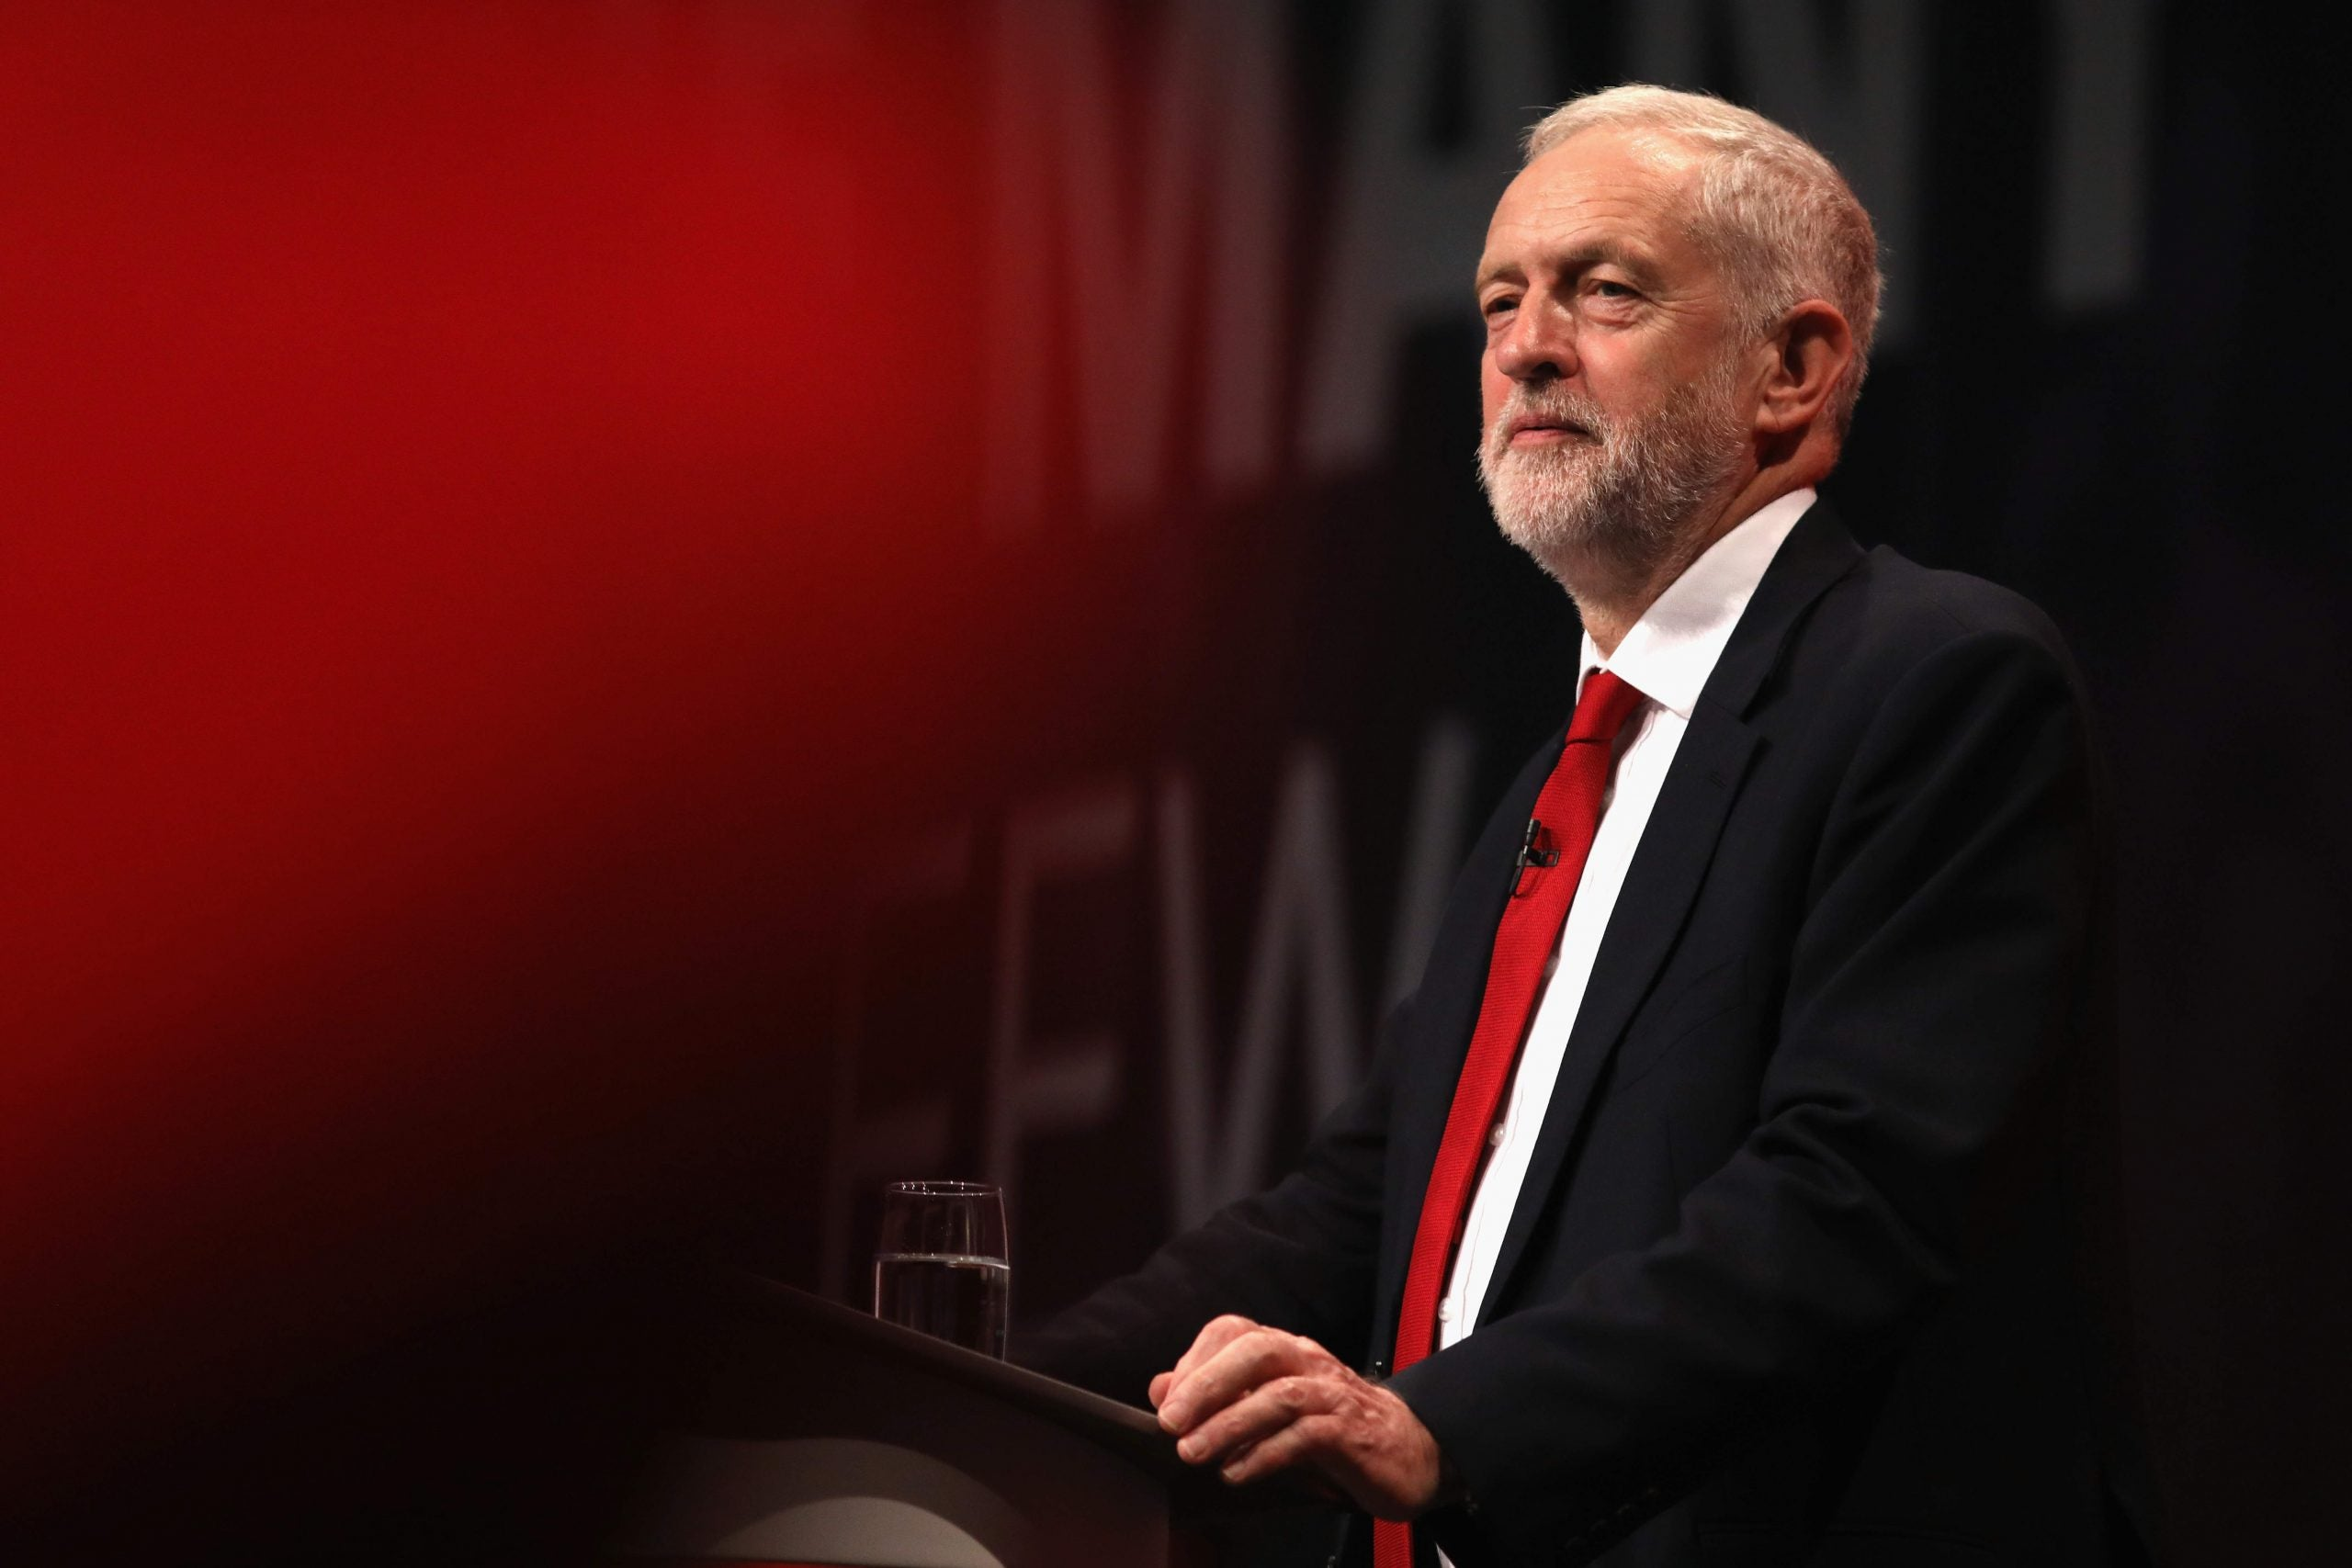 Will Jeremy Corbyn win the next election? That's not the question you should be asking